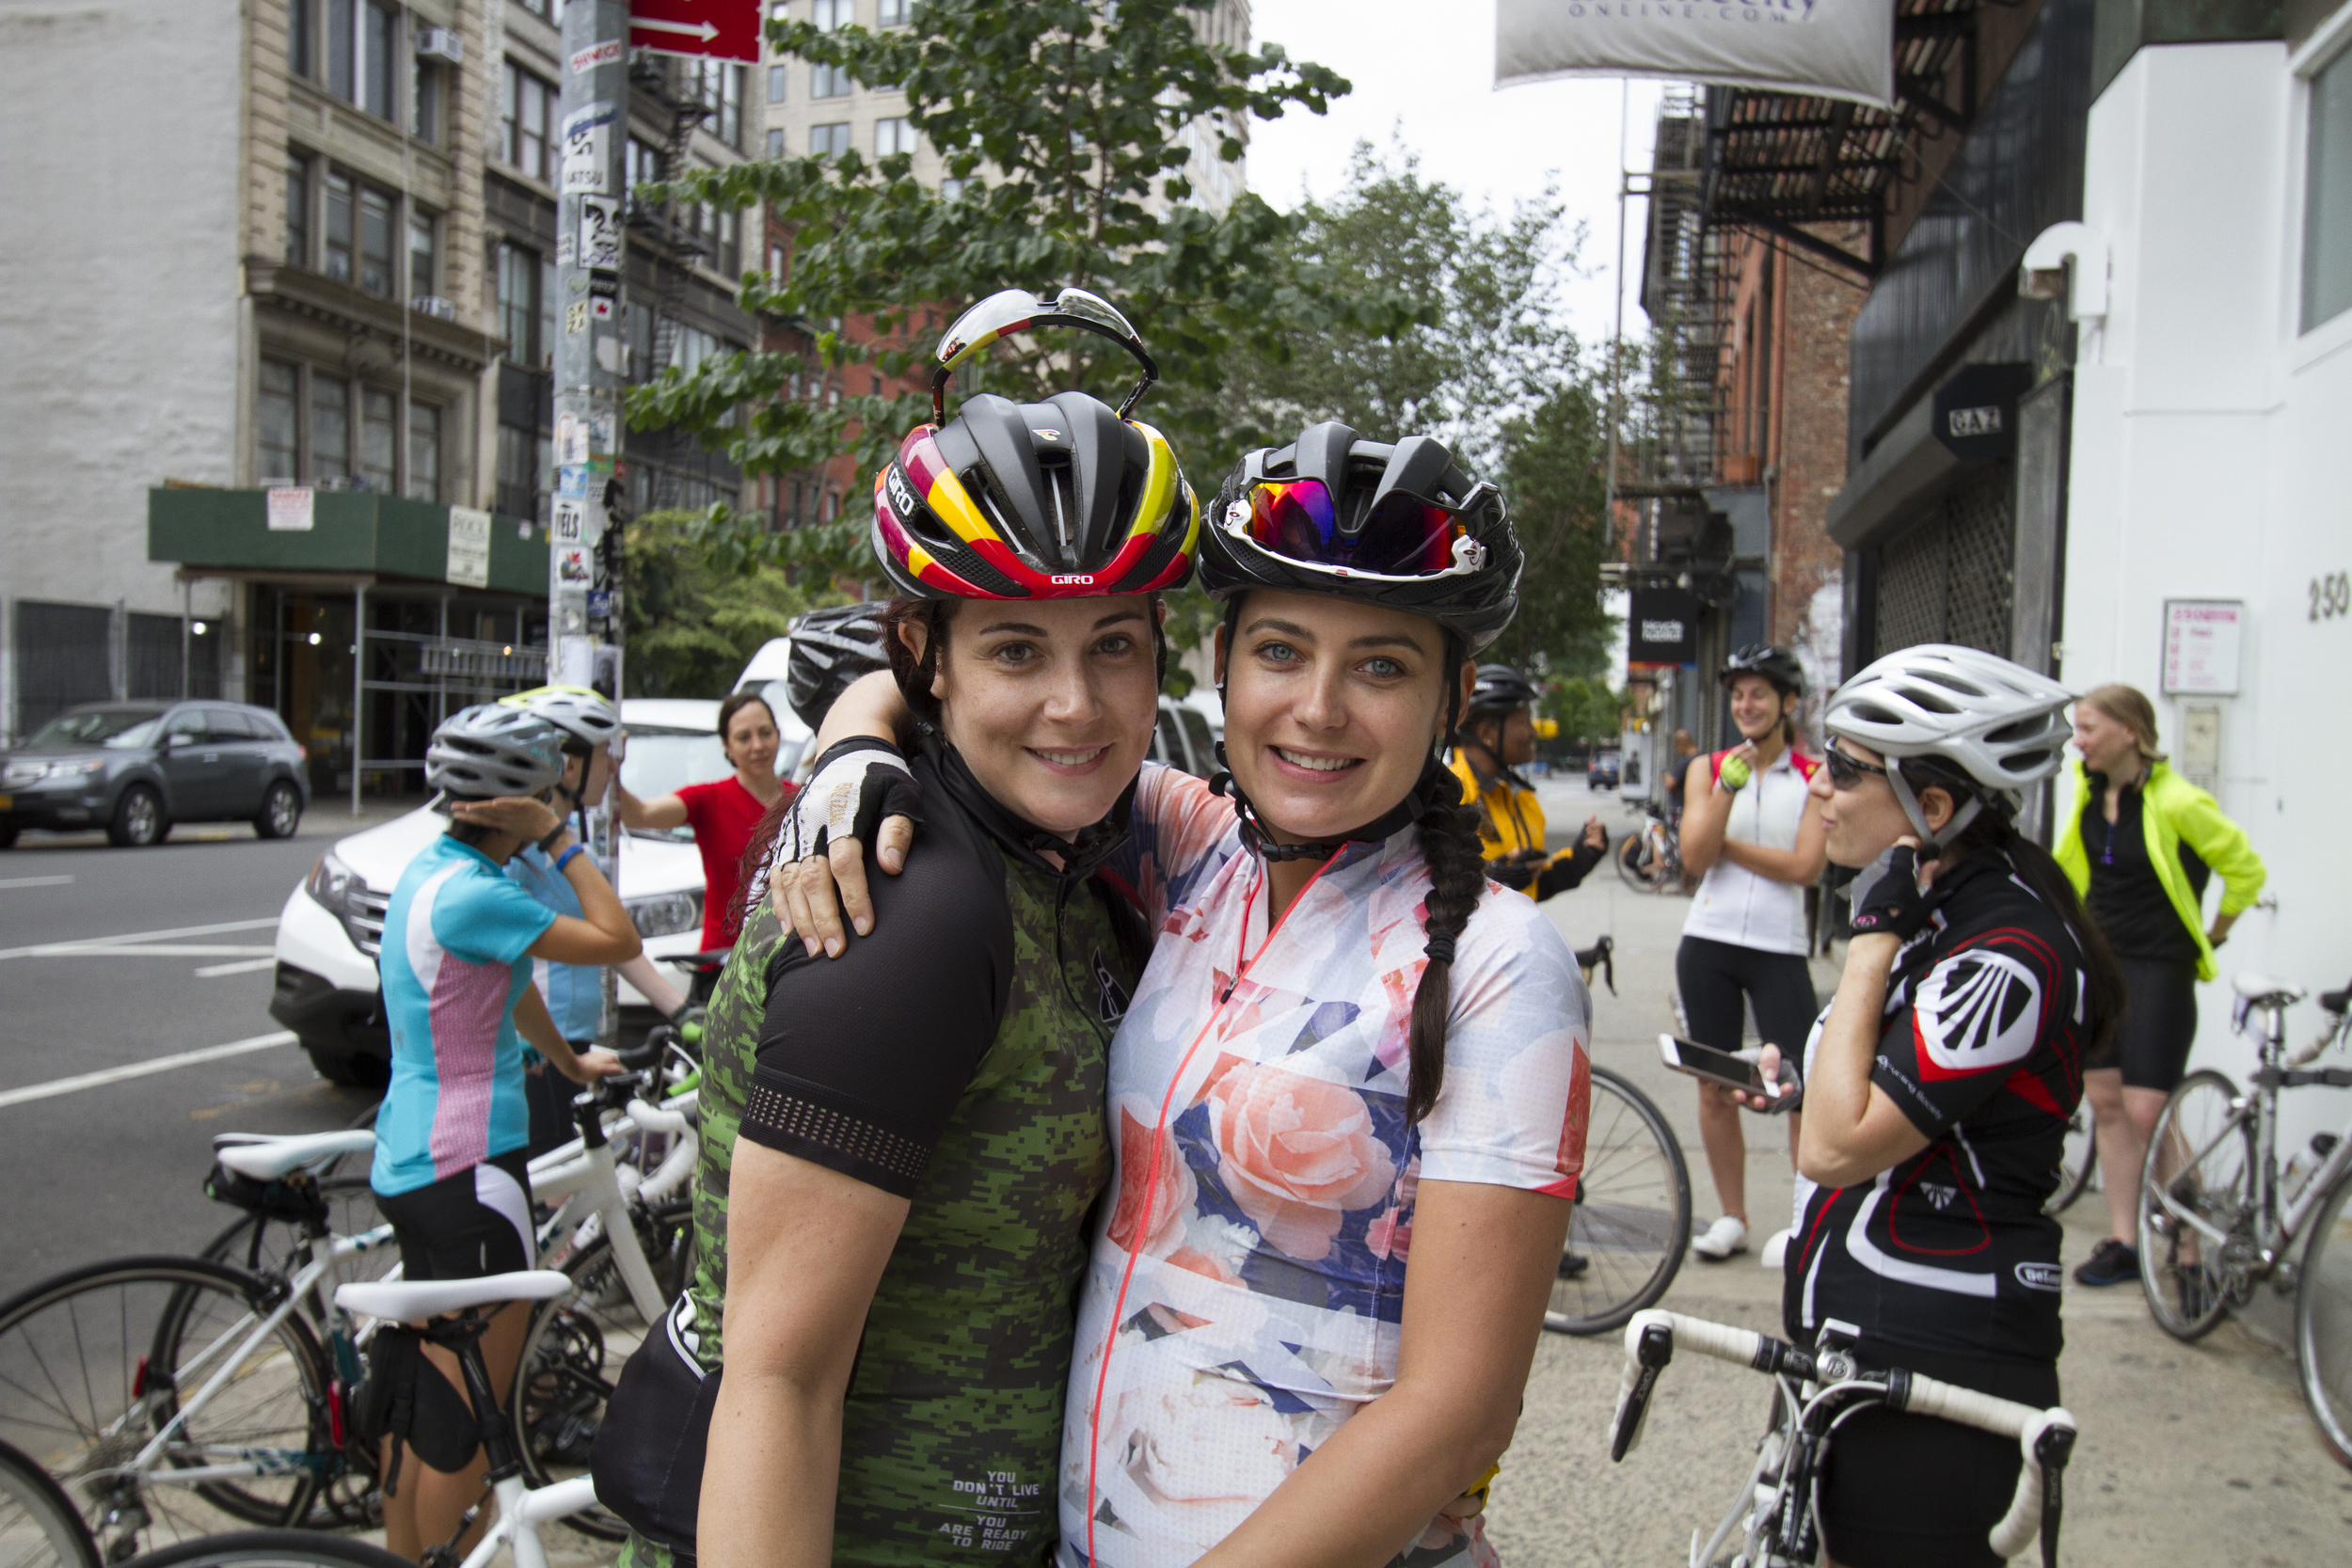 Laura Aguero-Dupla and Anna Maria pre-ride